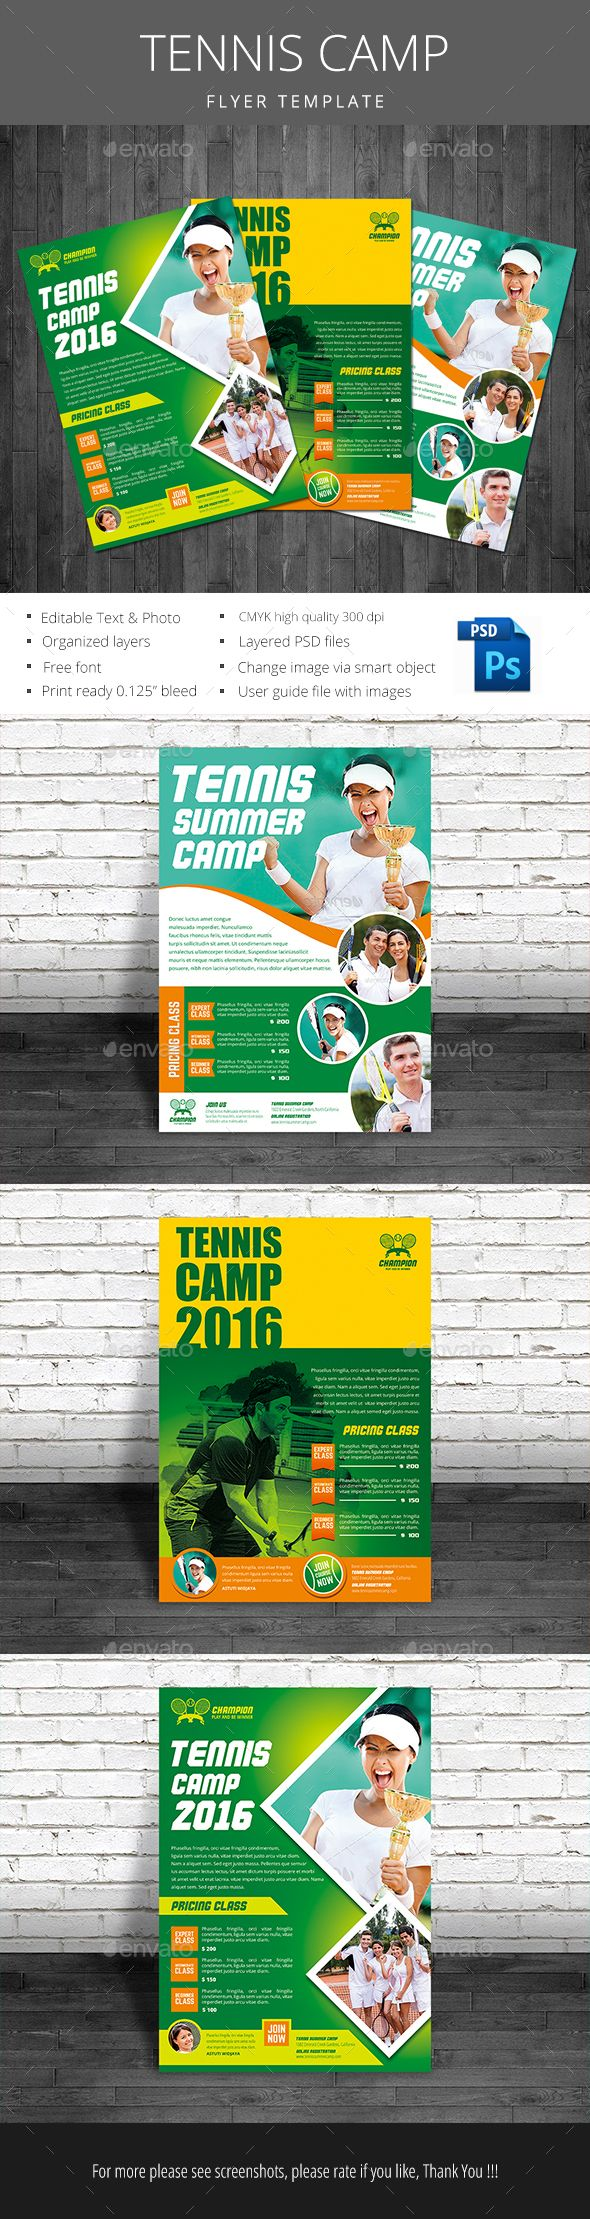 Tennis Camp Flyer by monggokerso Tennis Camp file features : Size A4 210297 mm   Bleed area CMYK / 300 dpi Easy to edit text Well organized PSD file 3 Alternative